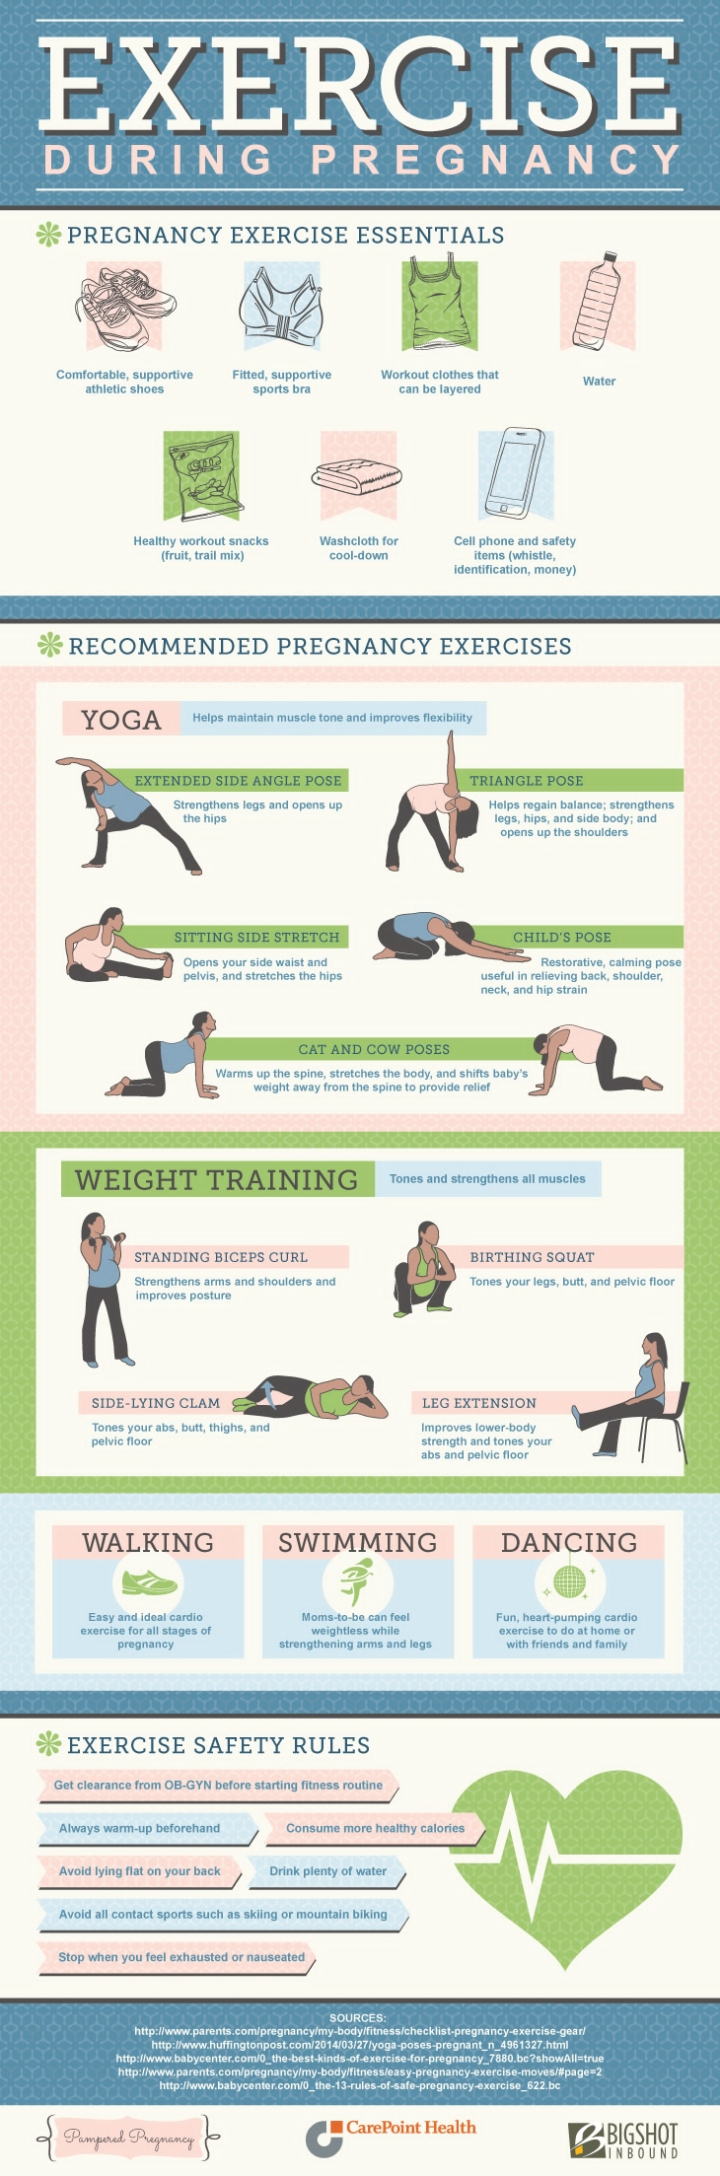 Exercise-During-Pregnancy-Infographic